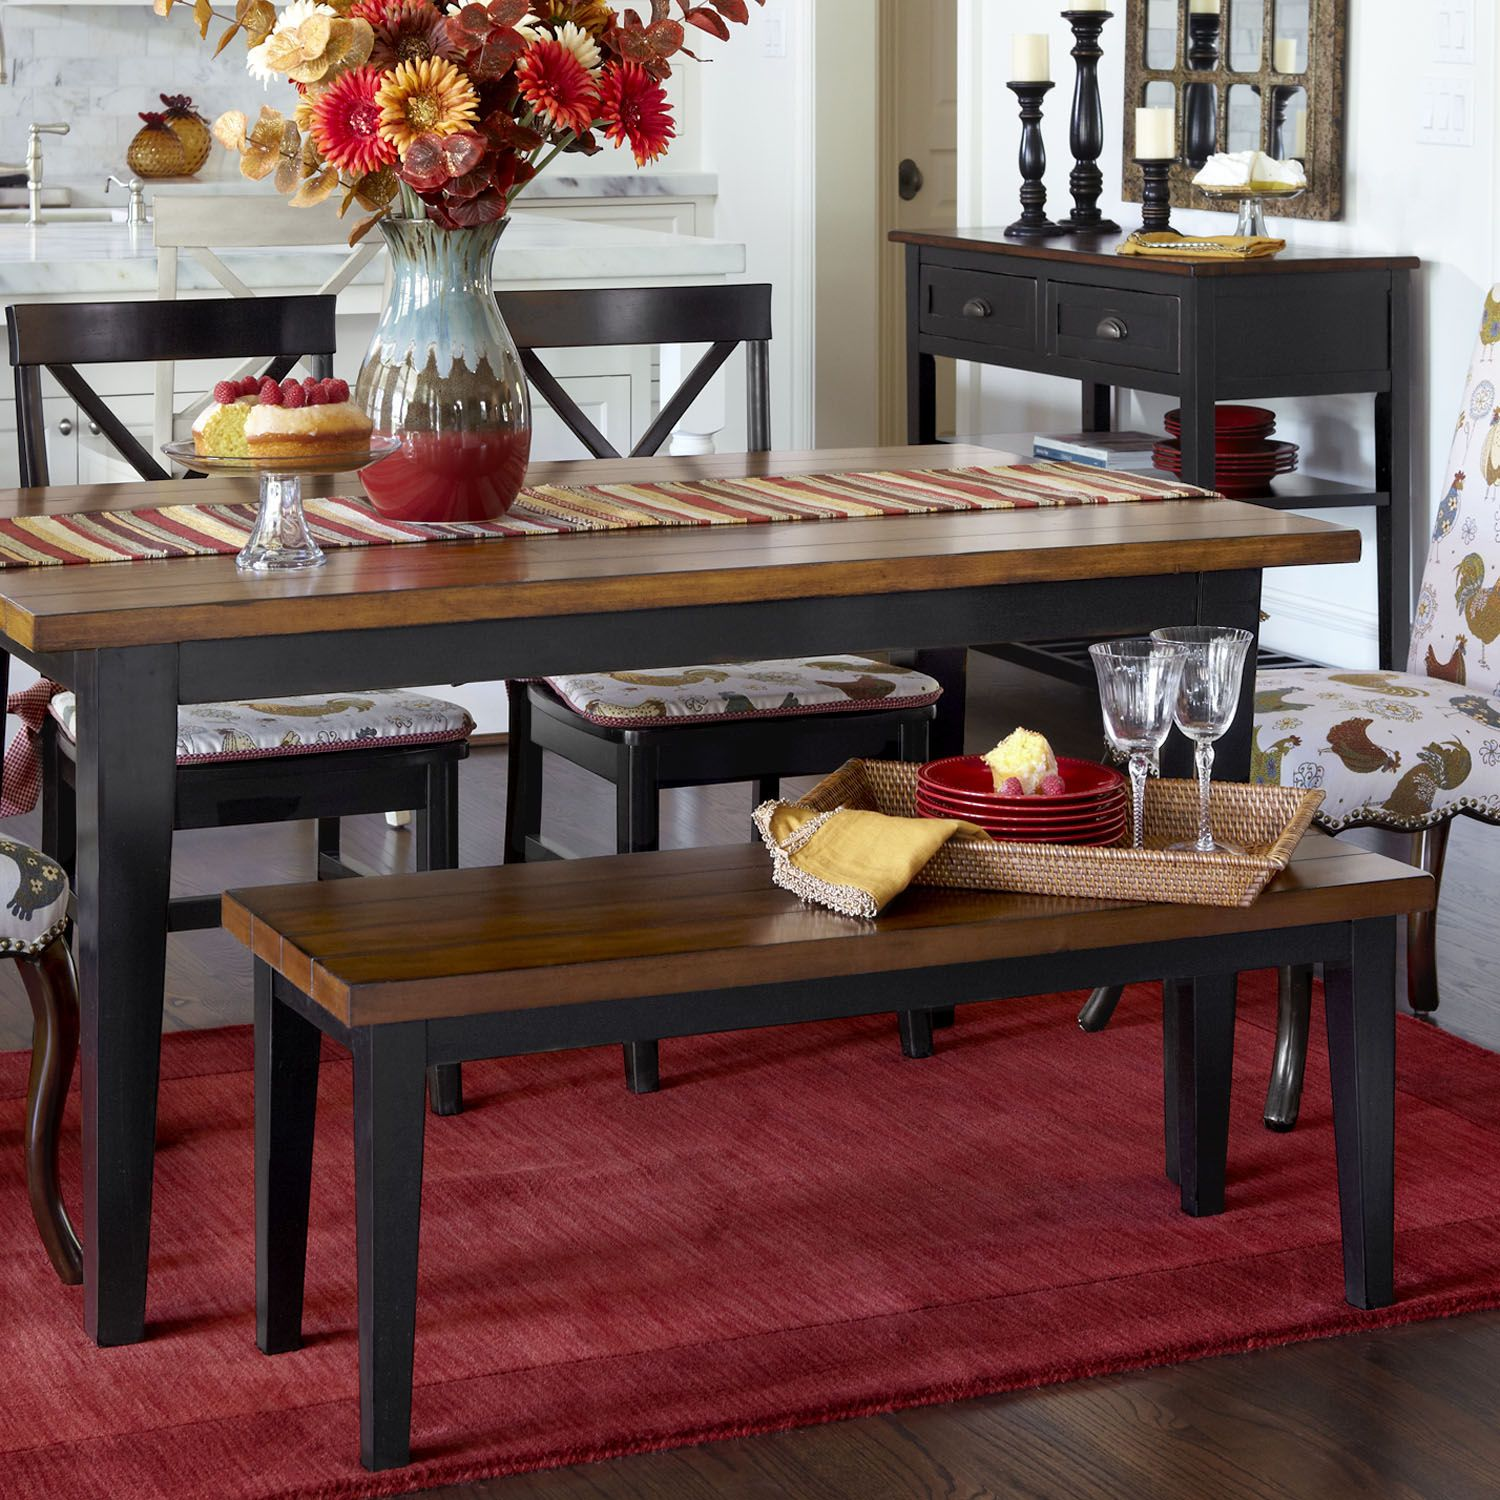 Eastwood Dining Room Collection At Pier 1 Home Decor Furniture